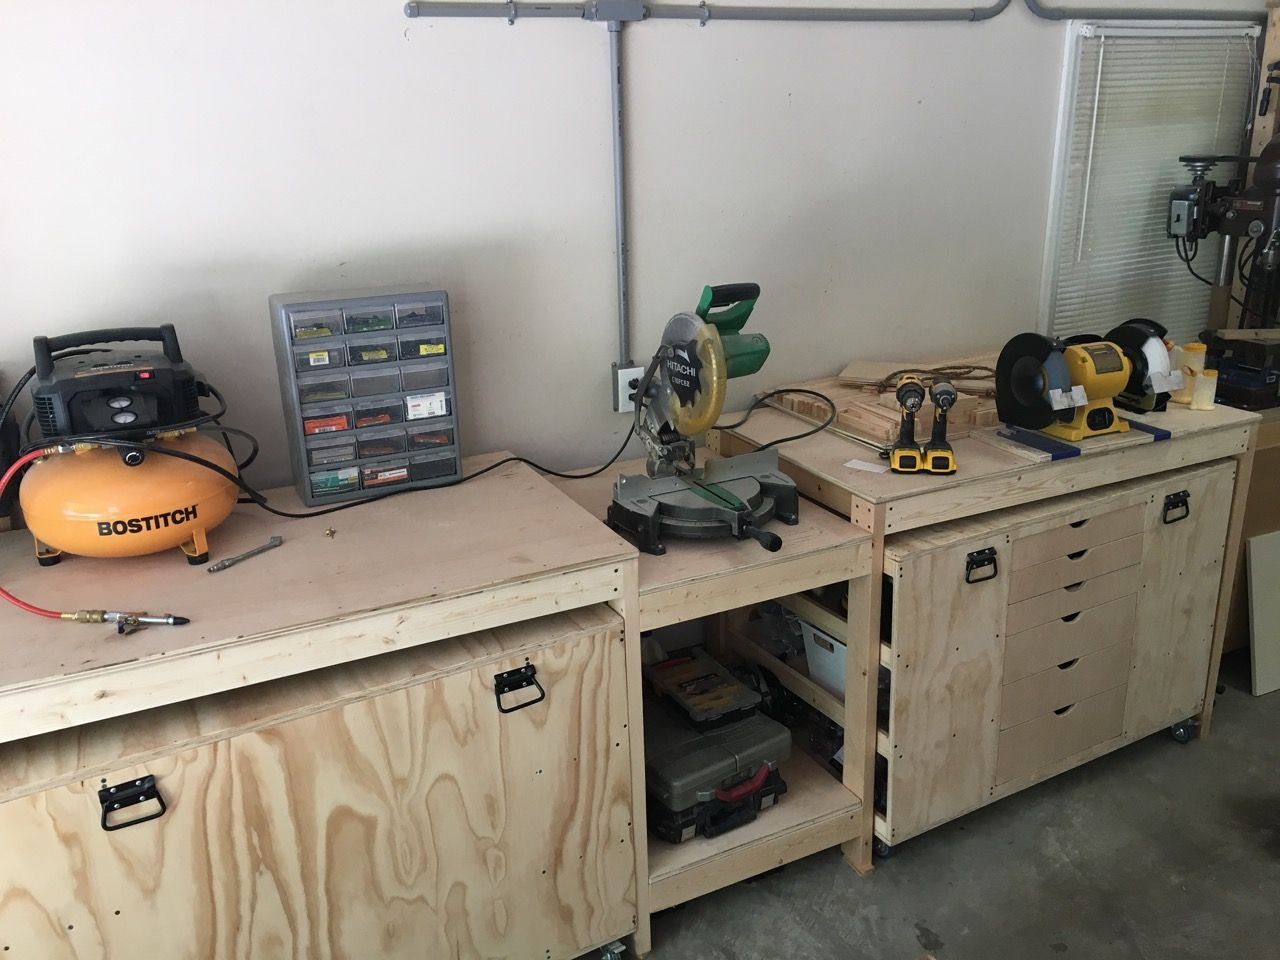 Stupendous Roll Away Miter Saw Workstation Ana White Miter Stand And Ncnpc Chair Design For Home Ncnpcorg